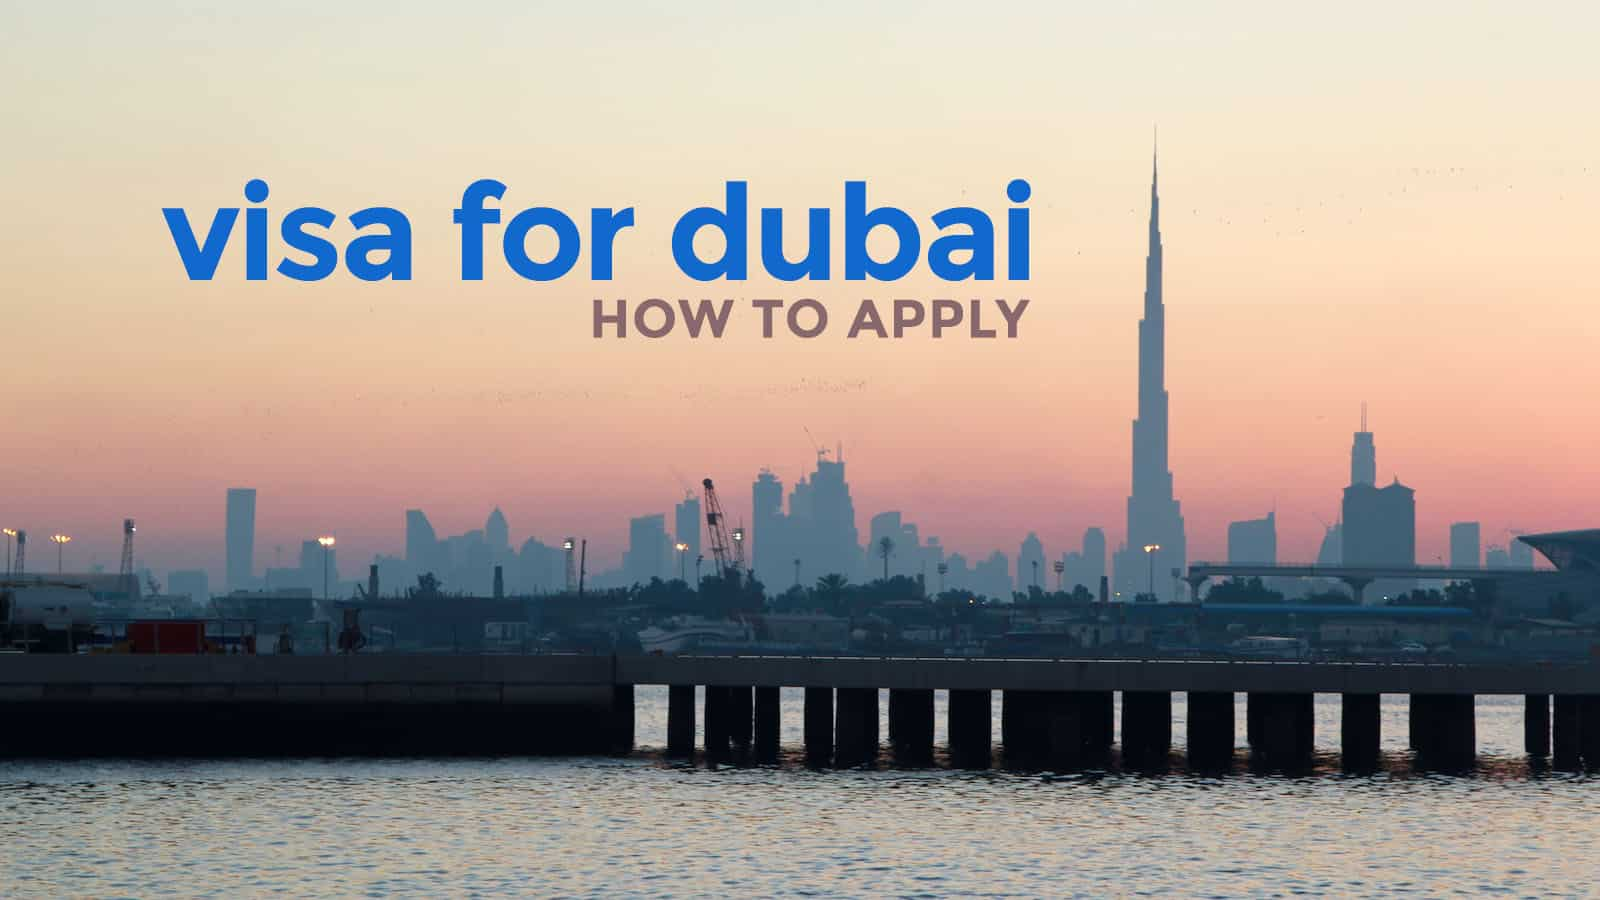 UAE VISA (DUBAI VISA): Requirements & How to Apply